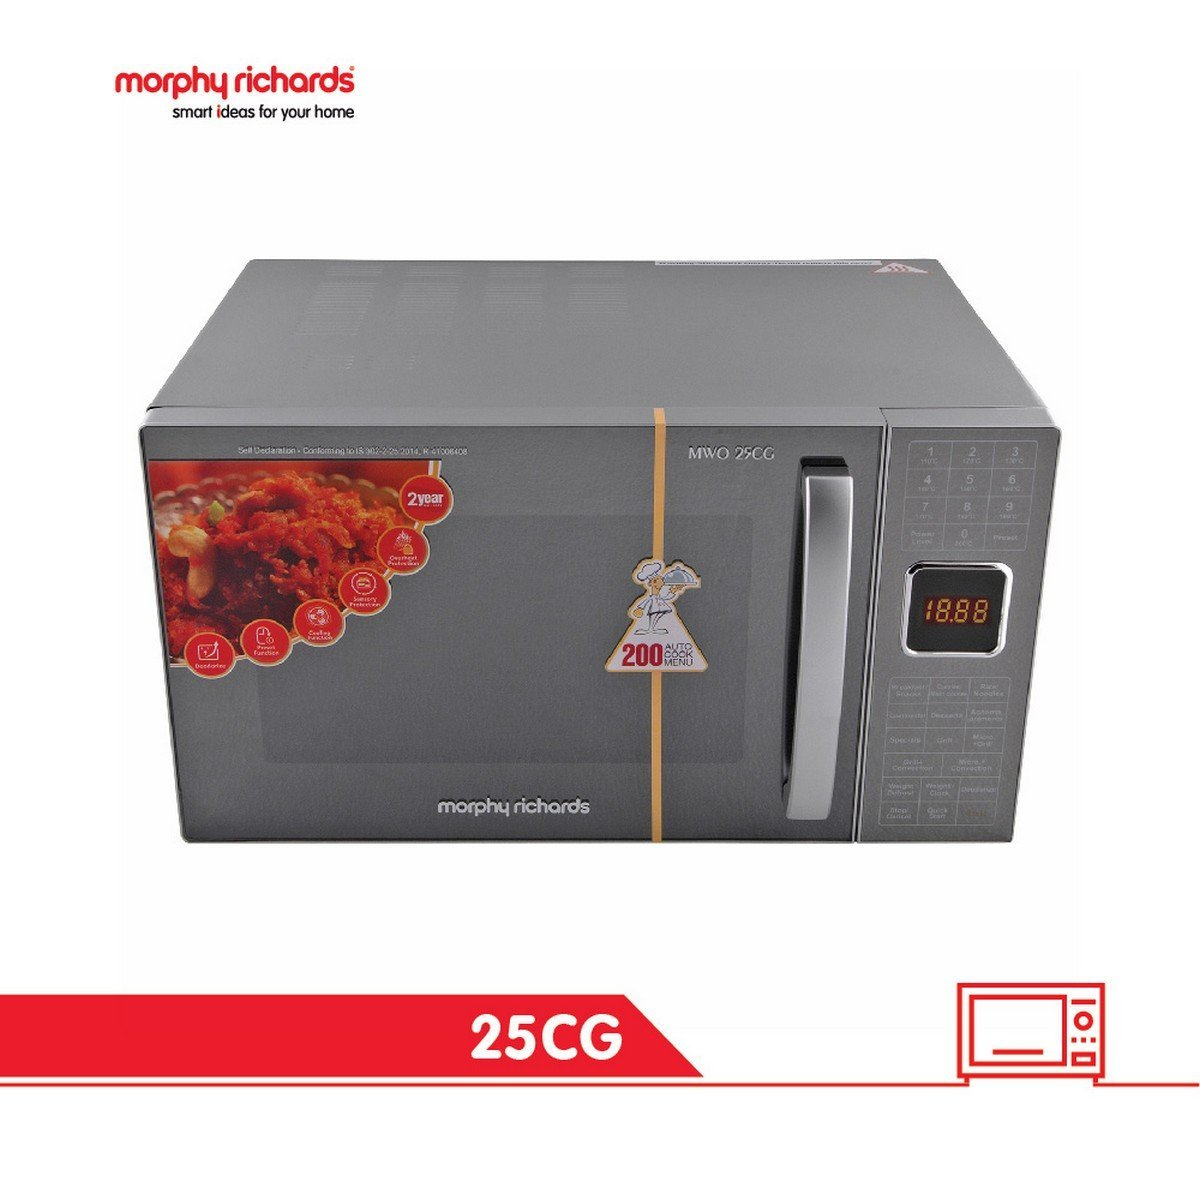 Morphy Richards 25 L Convection Microwave Oven (25 CG with 200 ACM, Silver)